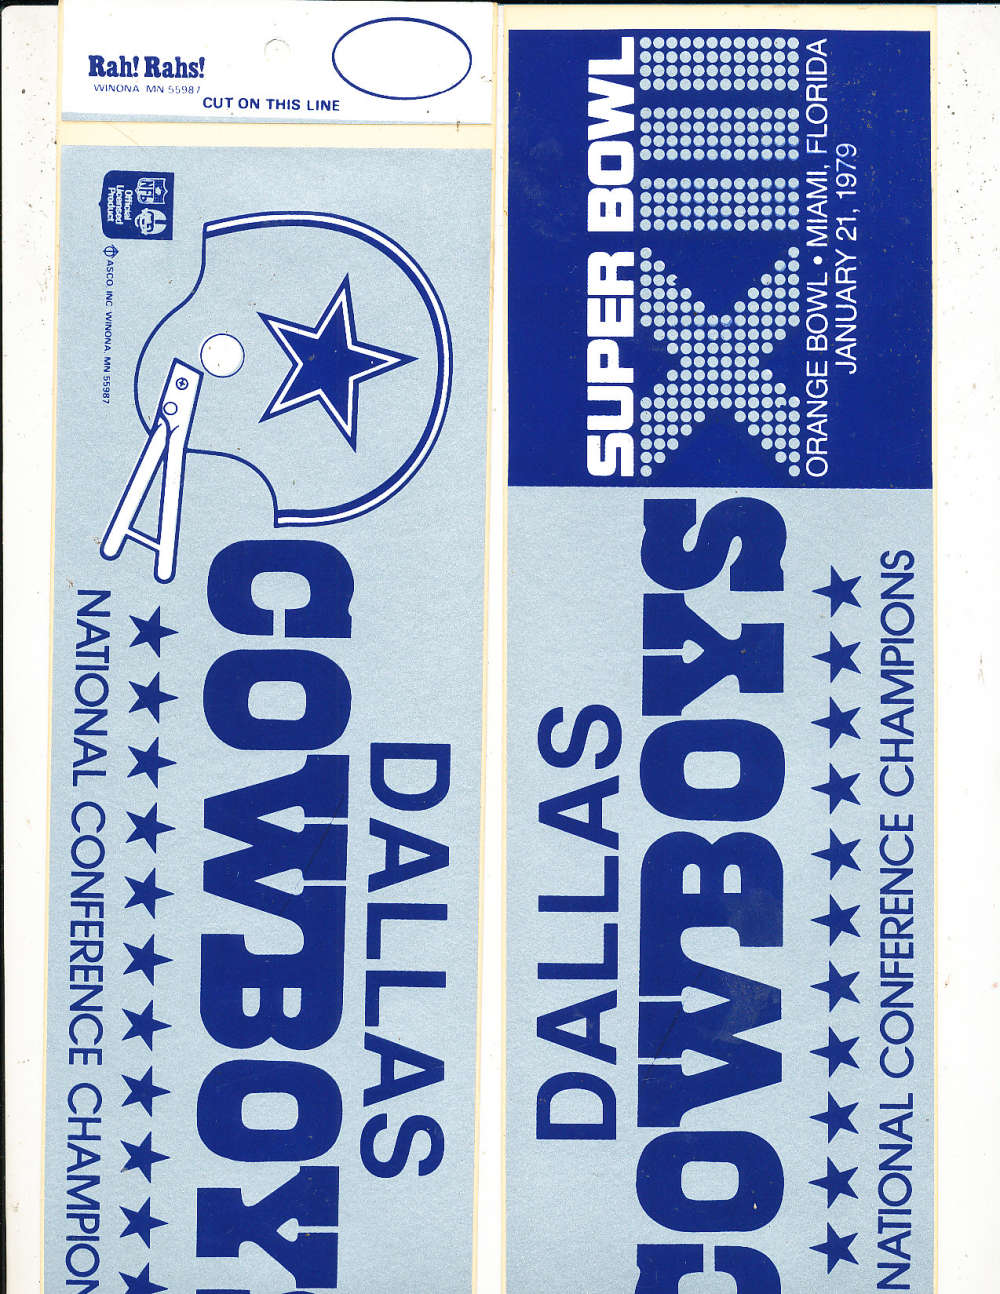 Dallas Cowboys SBXIII bumper sticker bx1